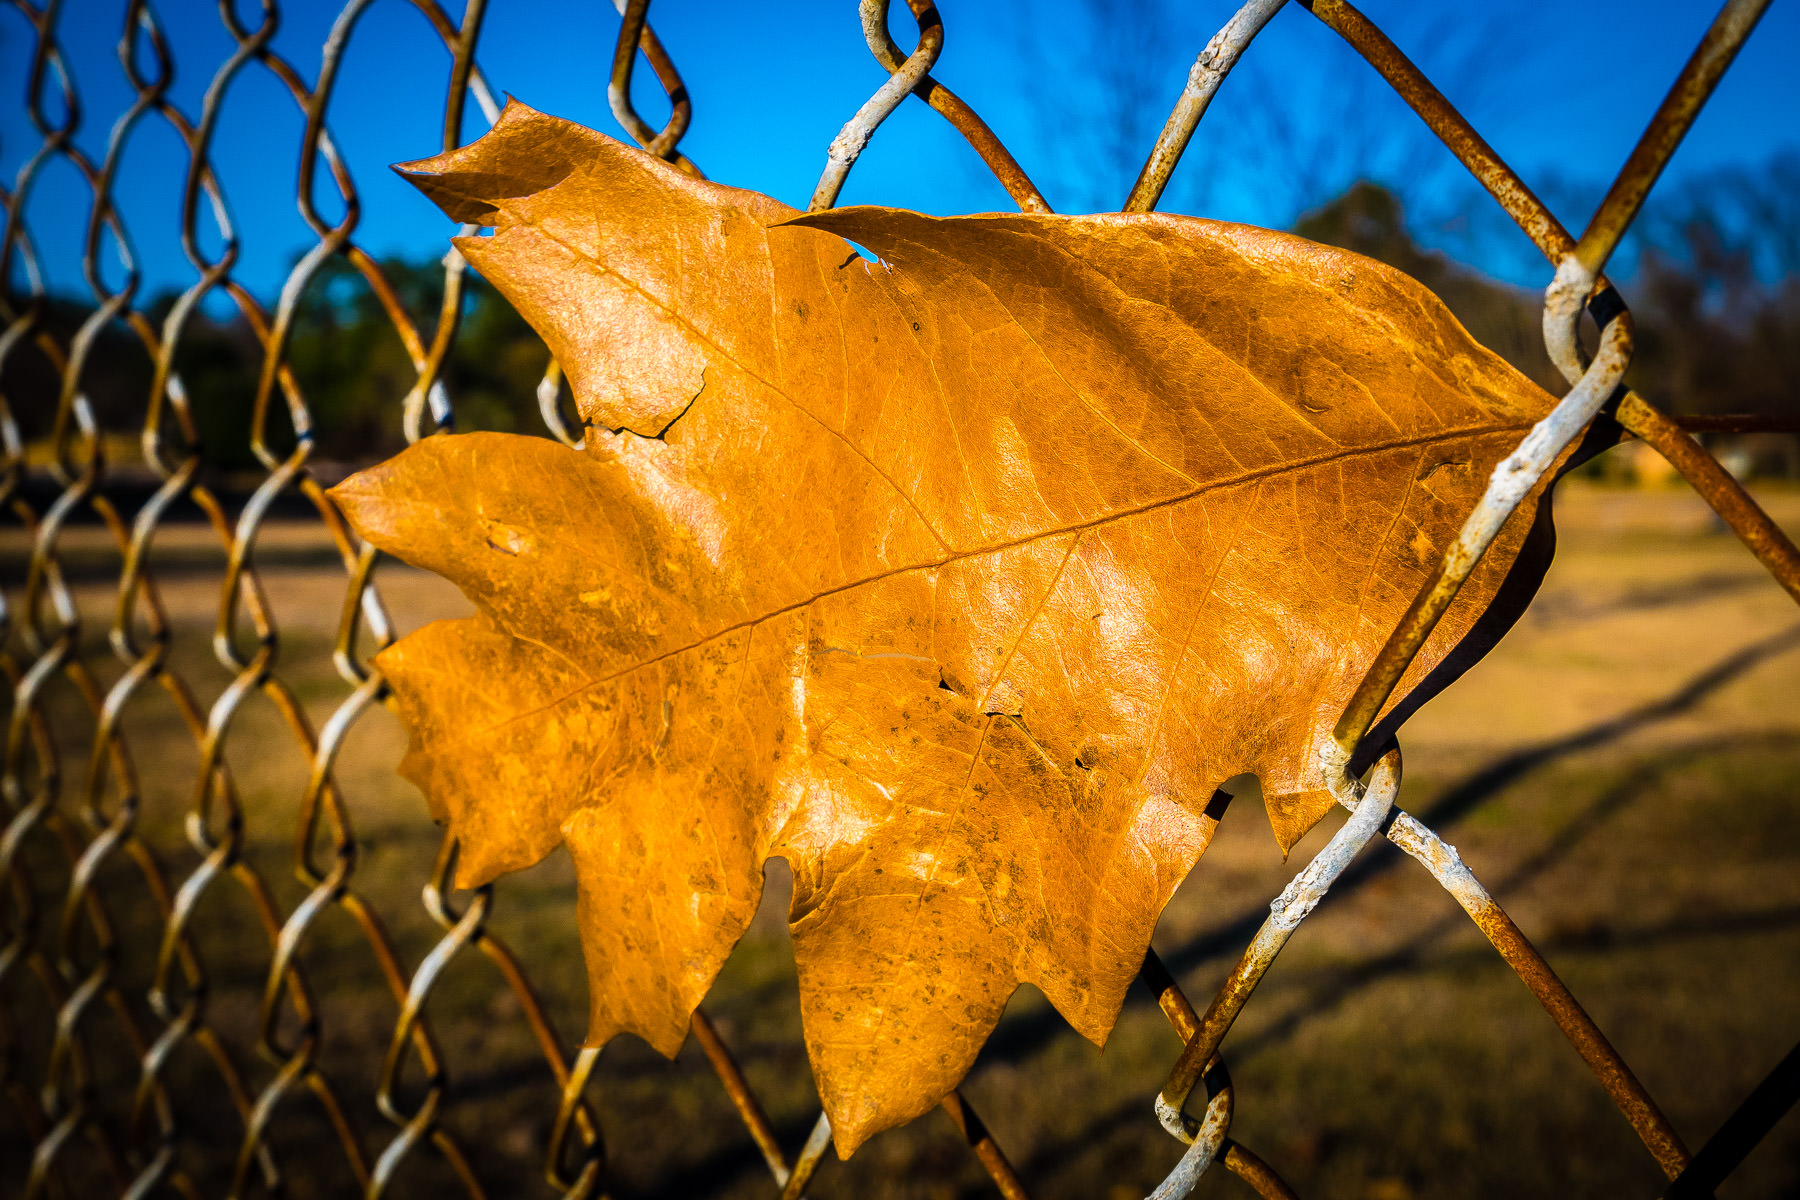 A dead leaf, swept by the wind into a chainlink fence at Tyler, Texas' Pollard Park.